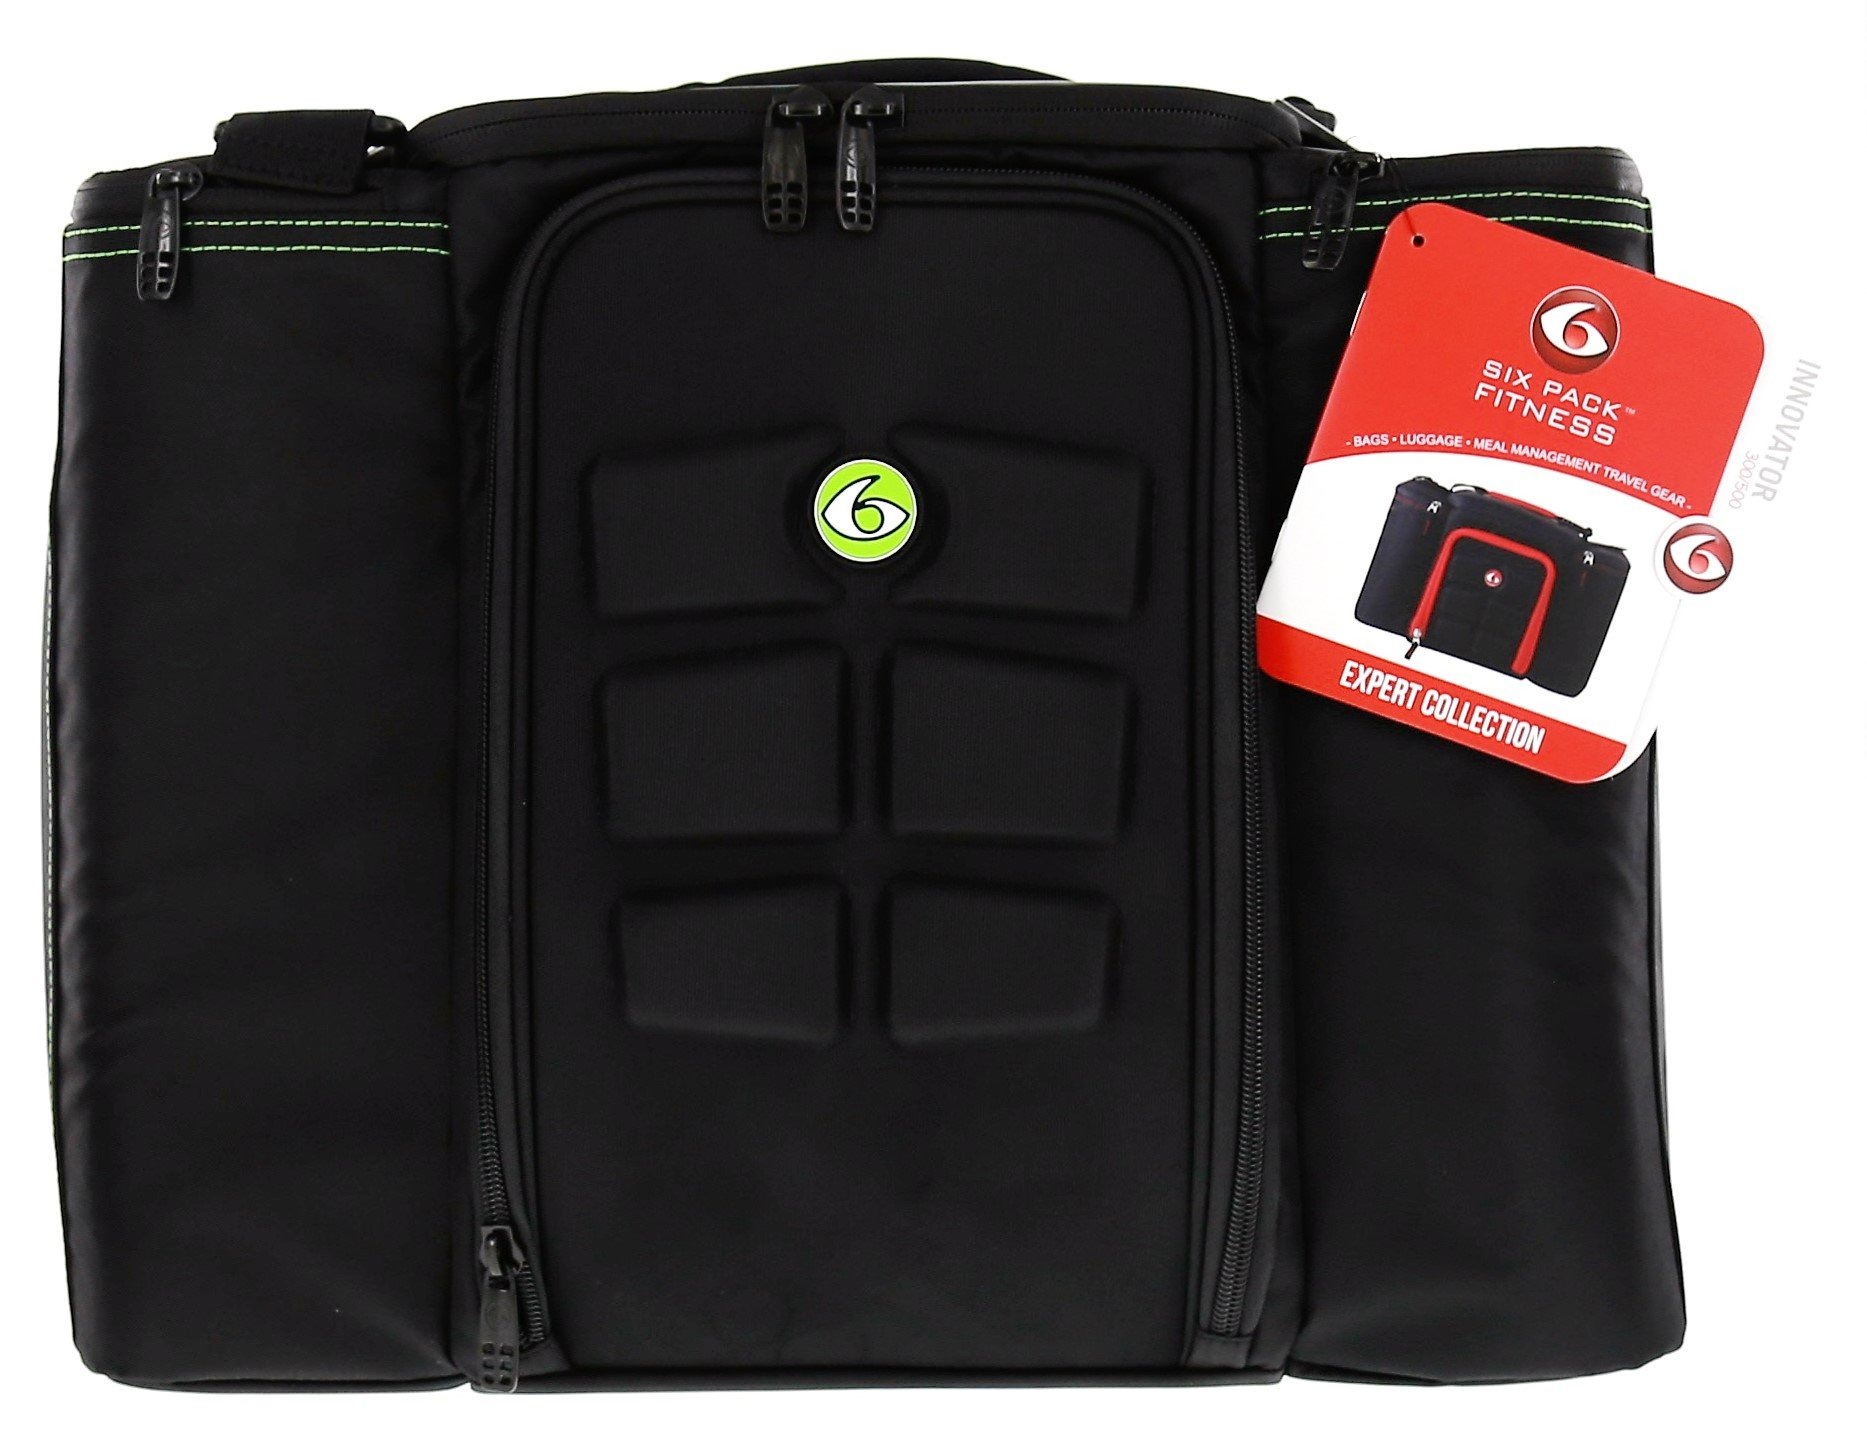 6 Pack Fitness Bag Innovator 500 Black/Neon Green (5 Meal)